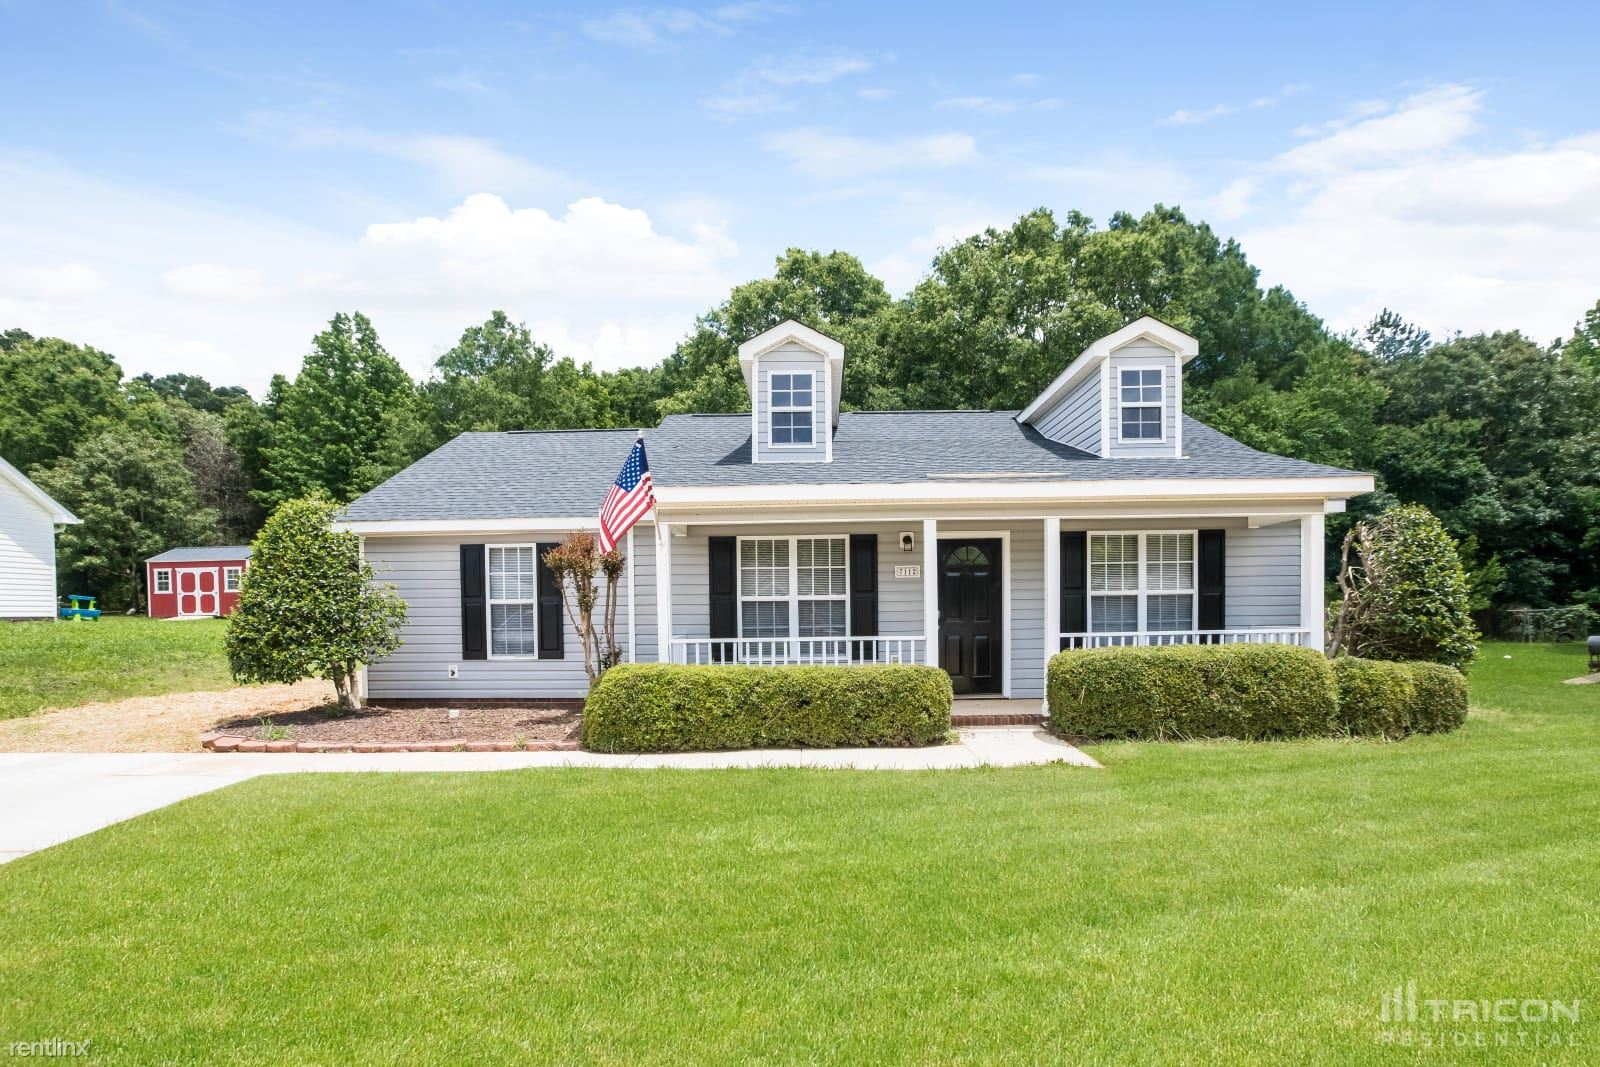 7112 Windsong Way, Wingate, NC - 1,449 USD/ month